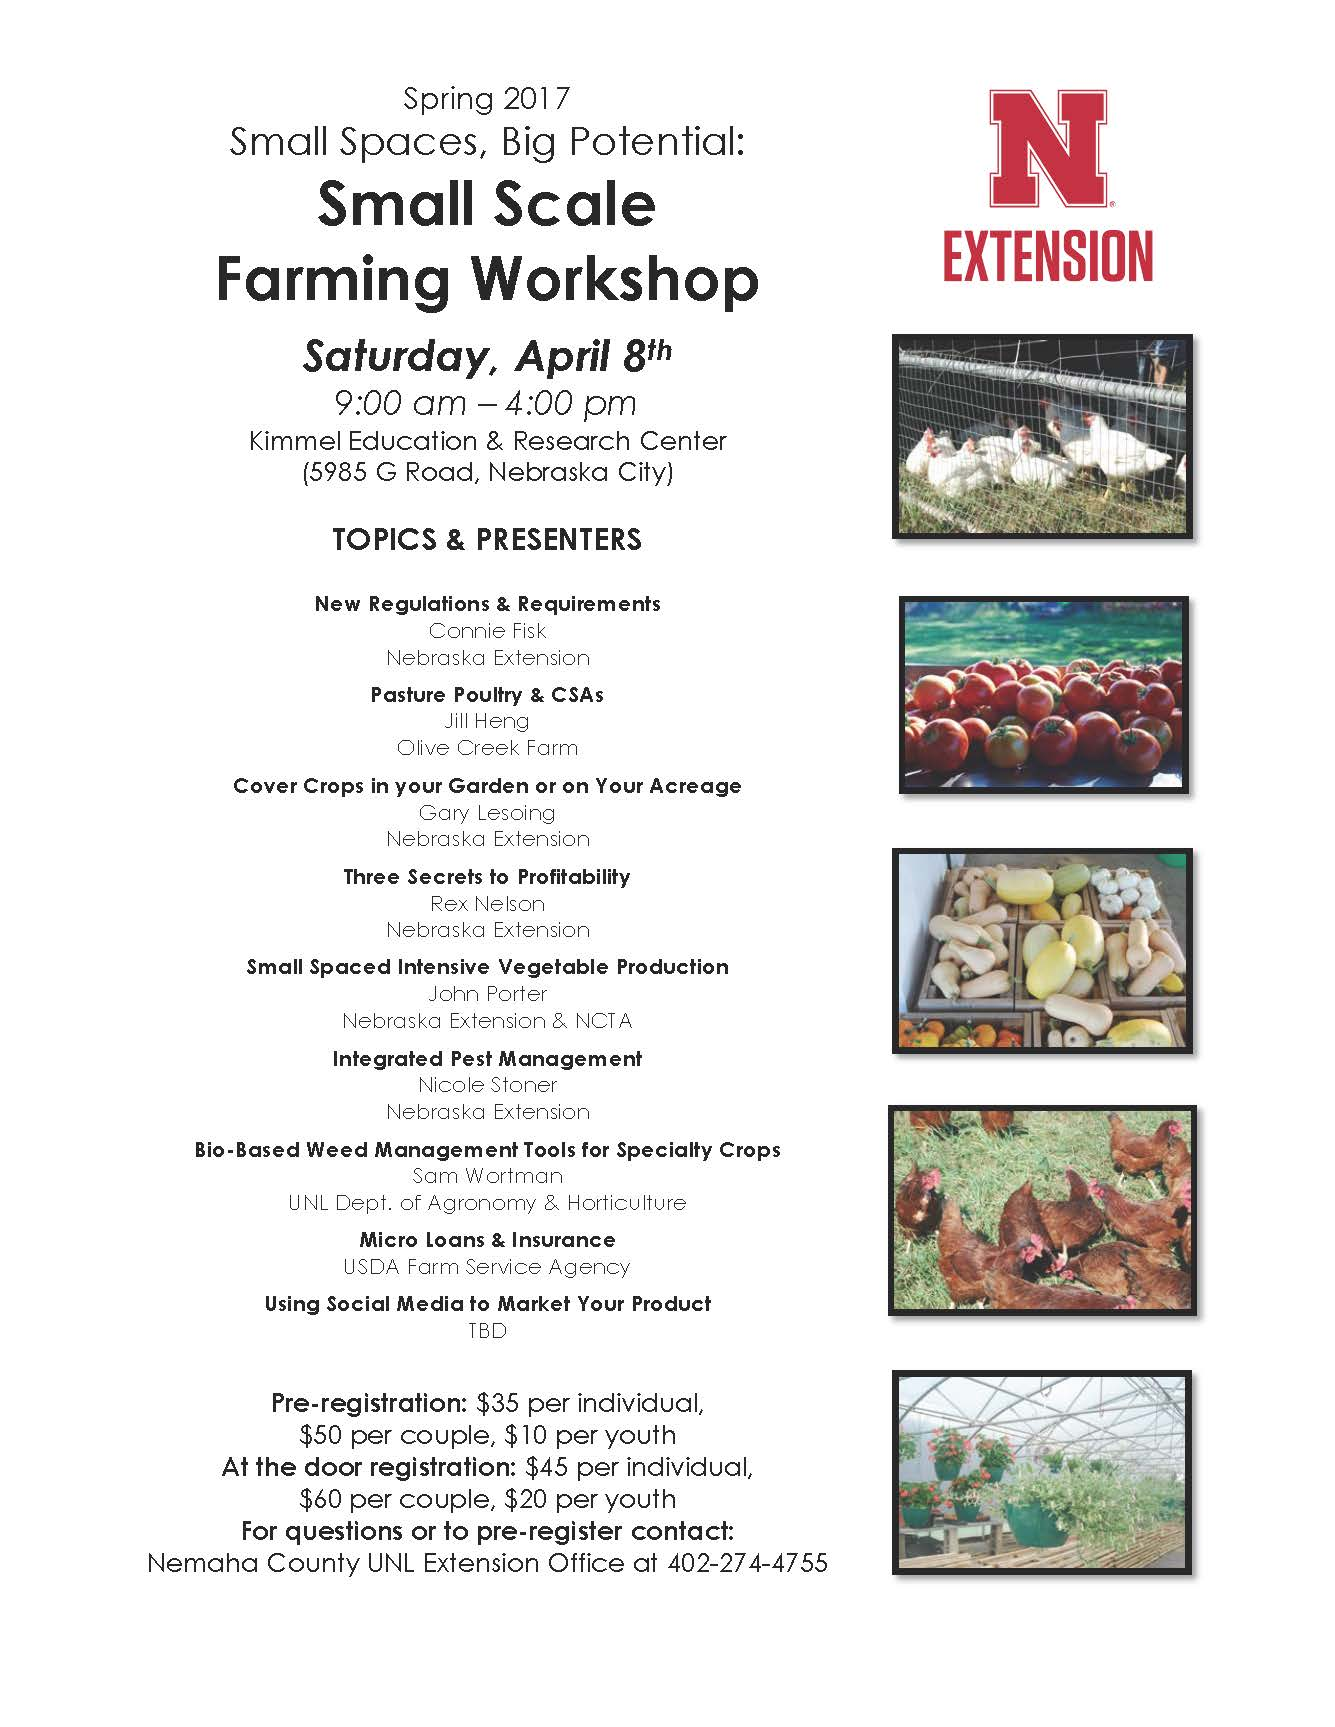 Small Scale Farming Workshop 2017